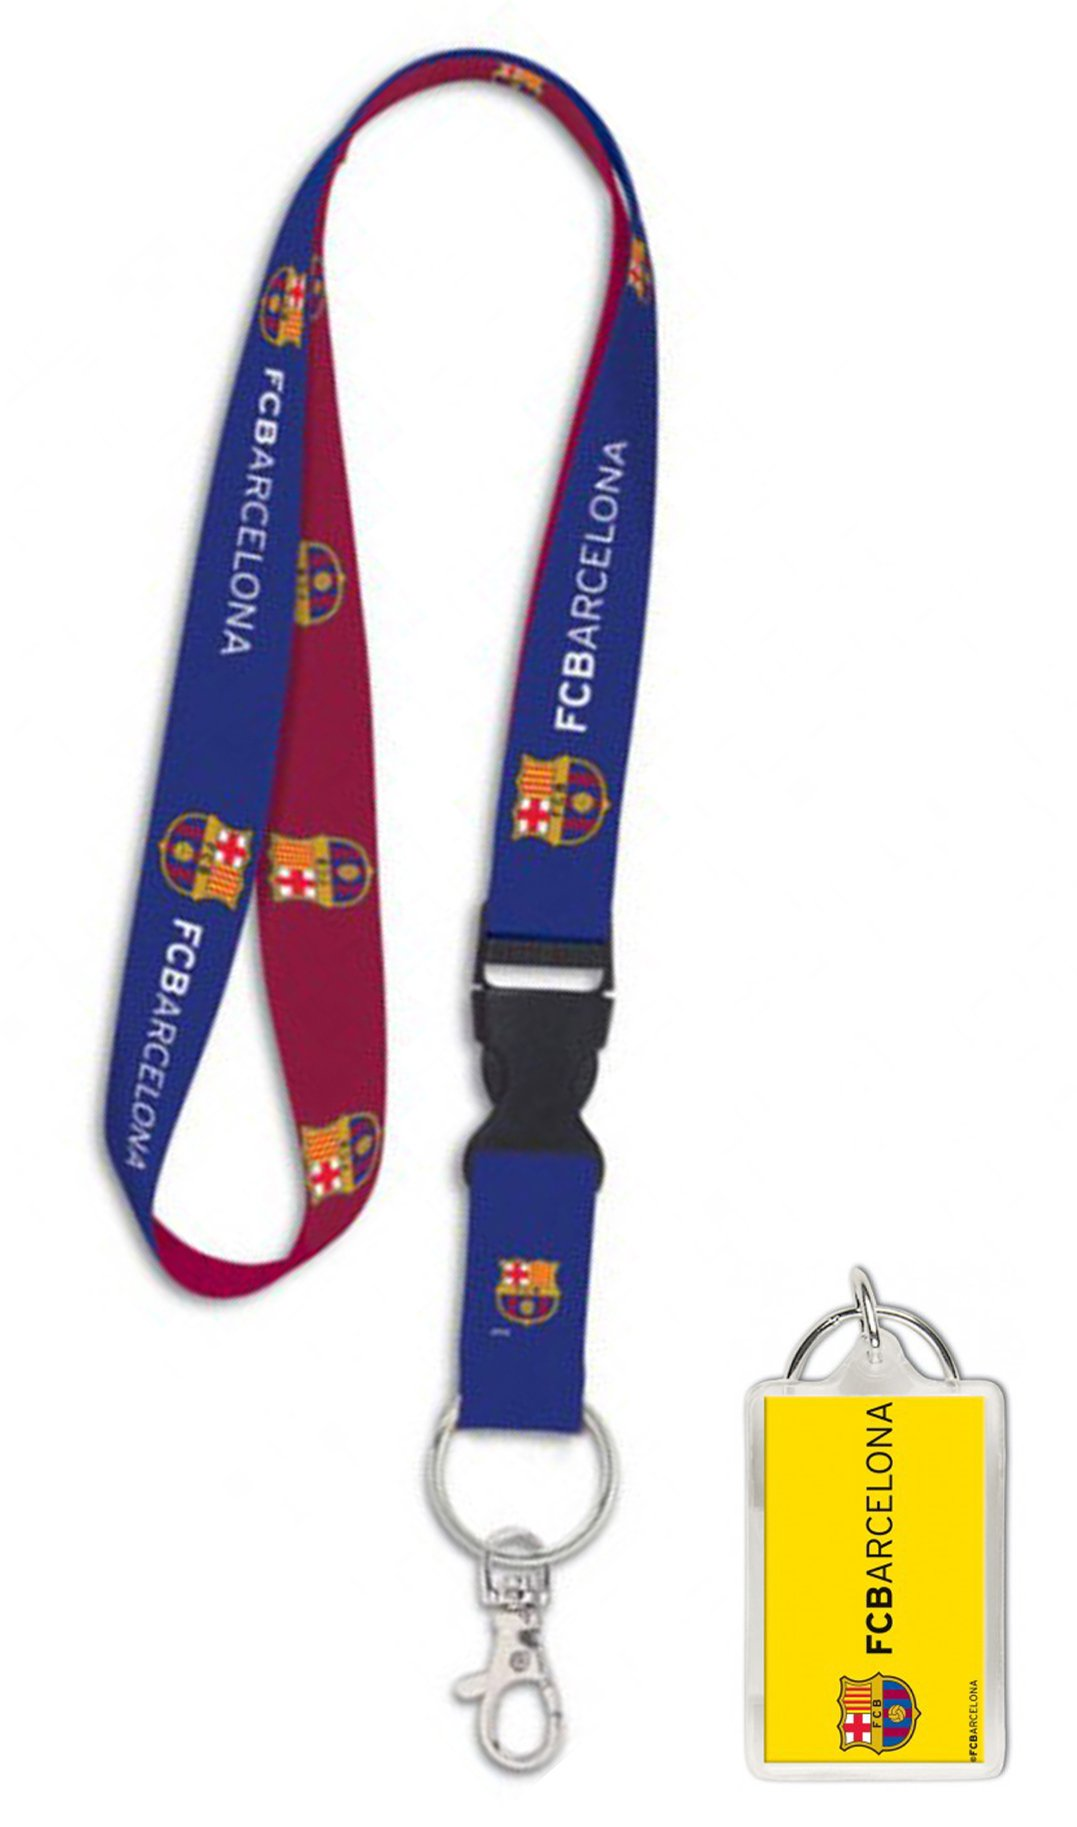 FC Barcelona Premium Lanyard Key Chain and Key Ring Gift Set